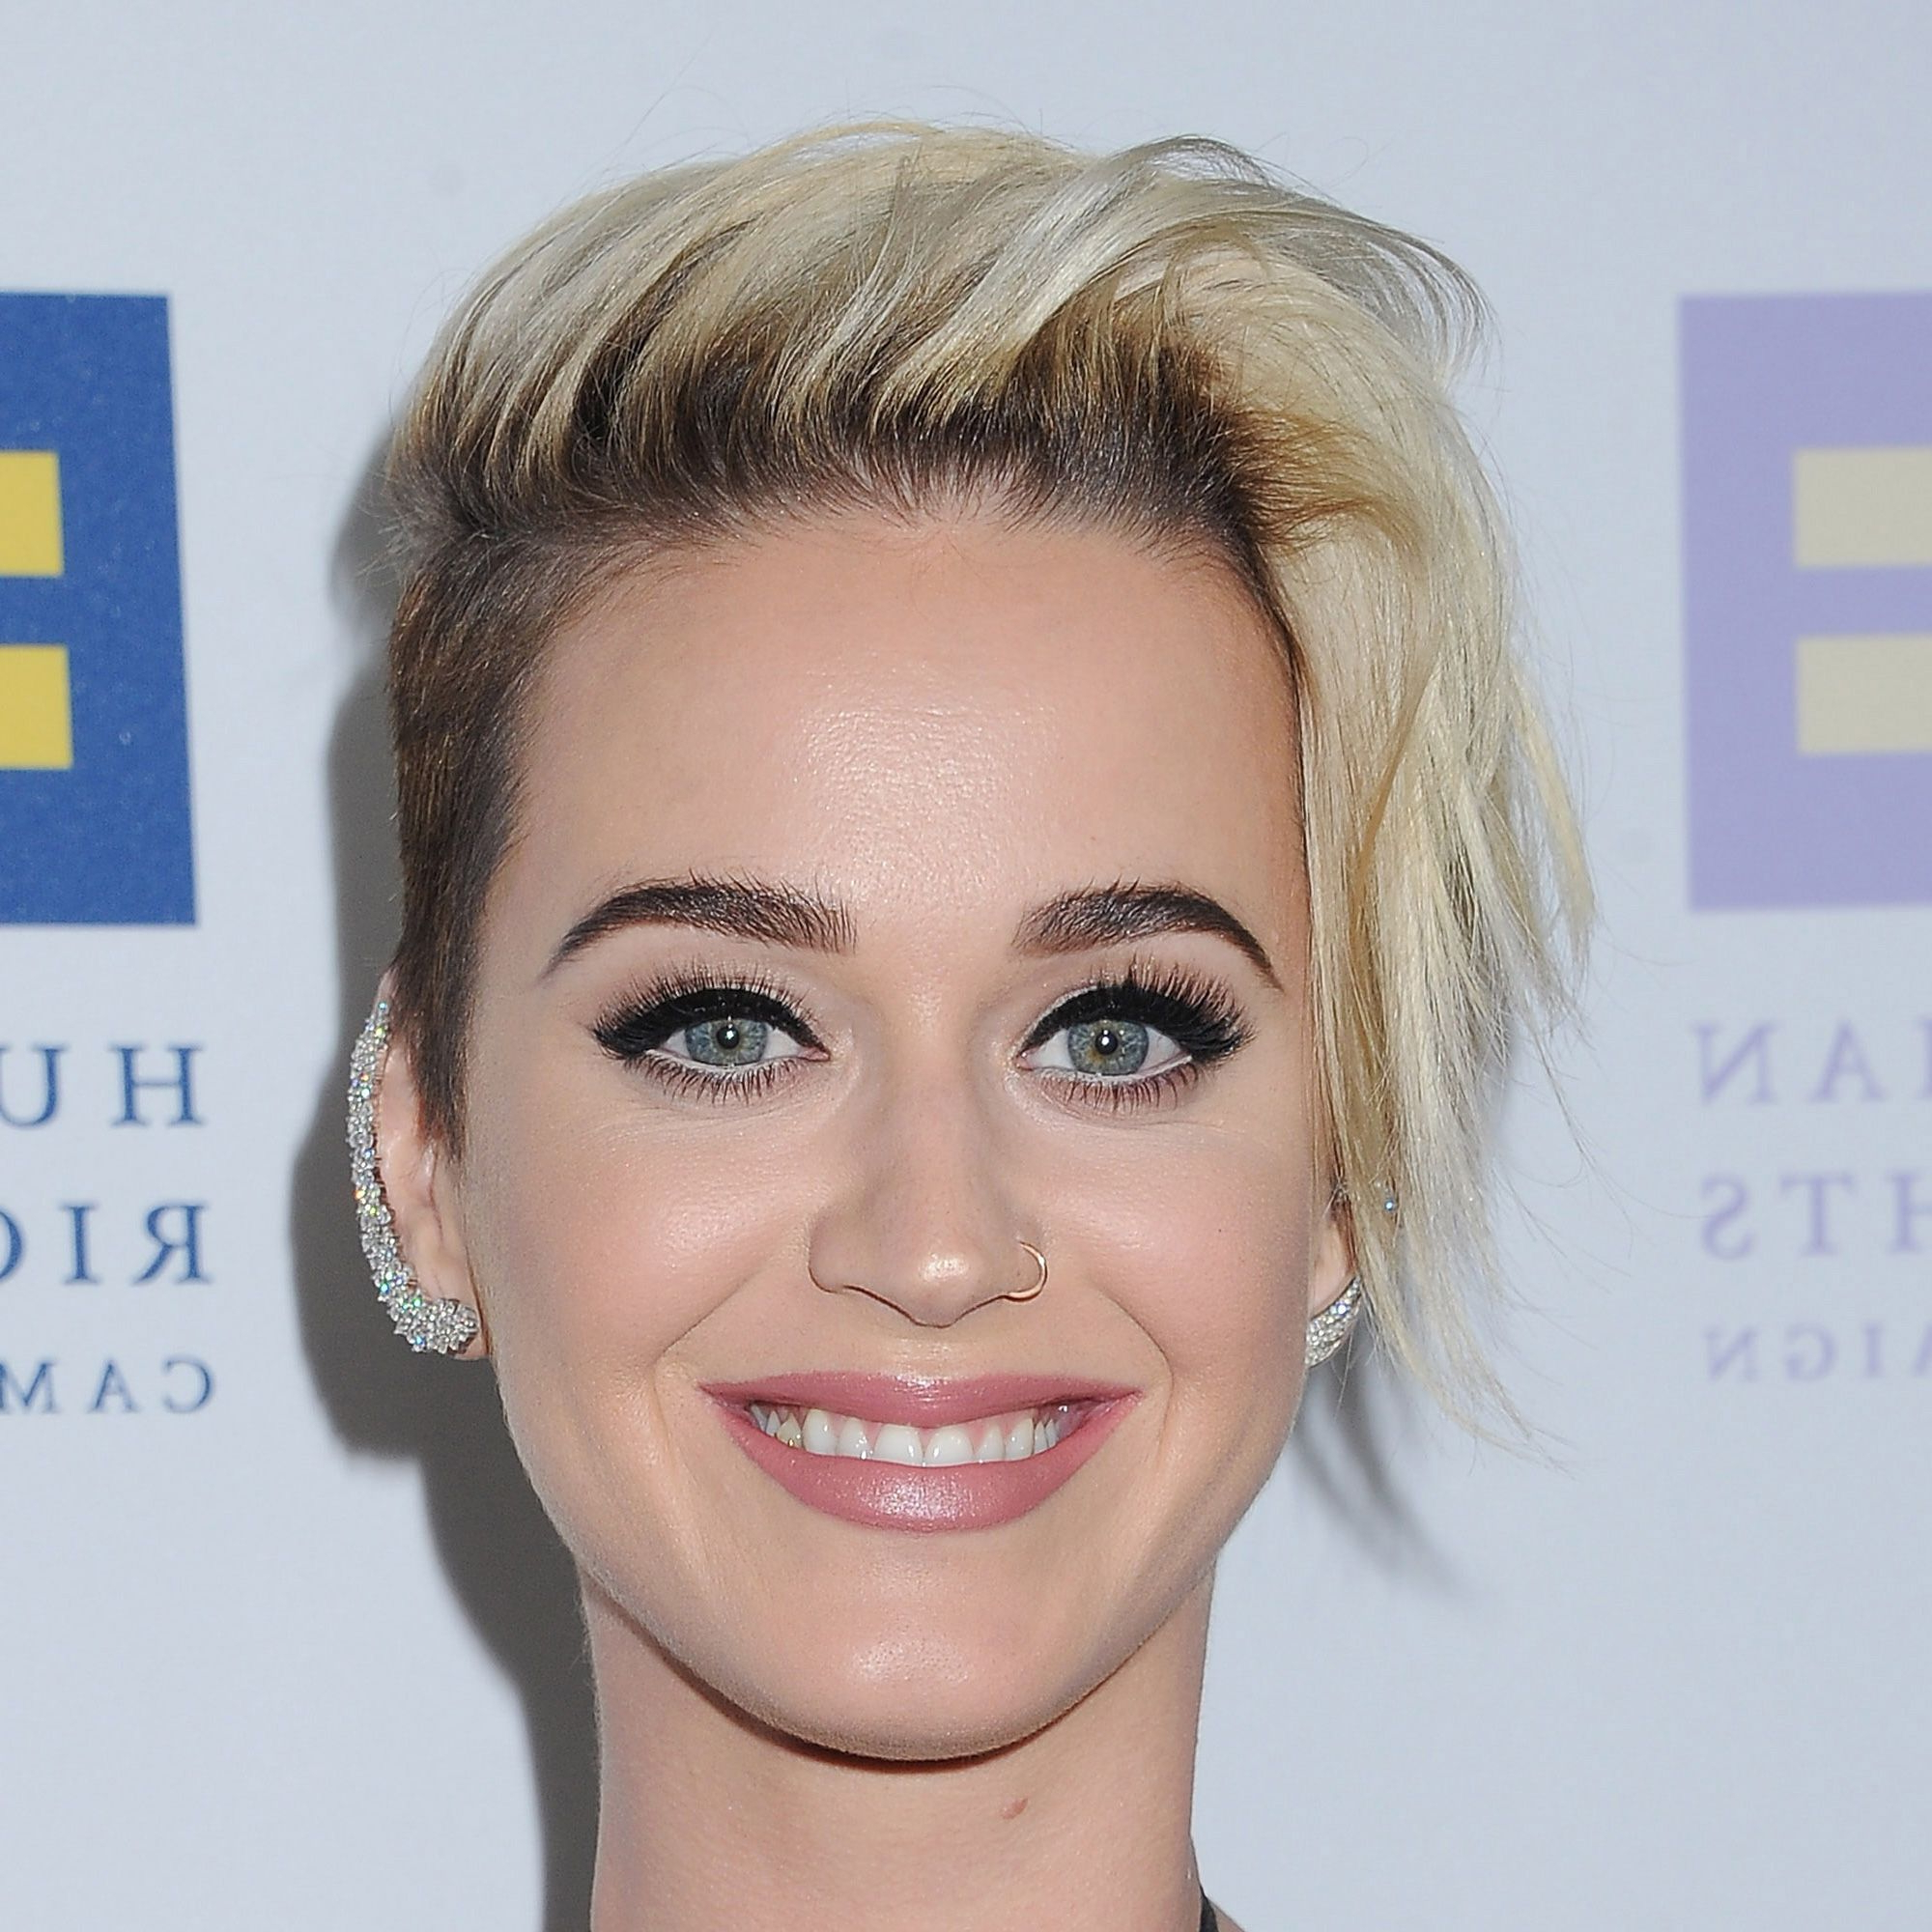 87 Cute Short Hairstyles & Haircuts - How To Style Short Hair with regard to Dark-Blonde Short Curly Hairstyles